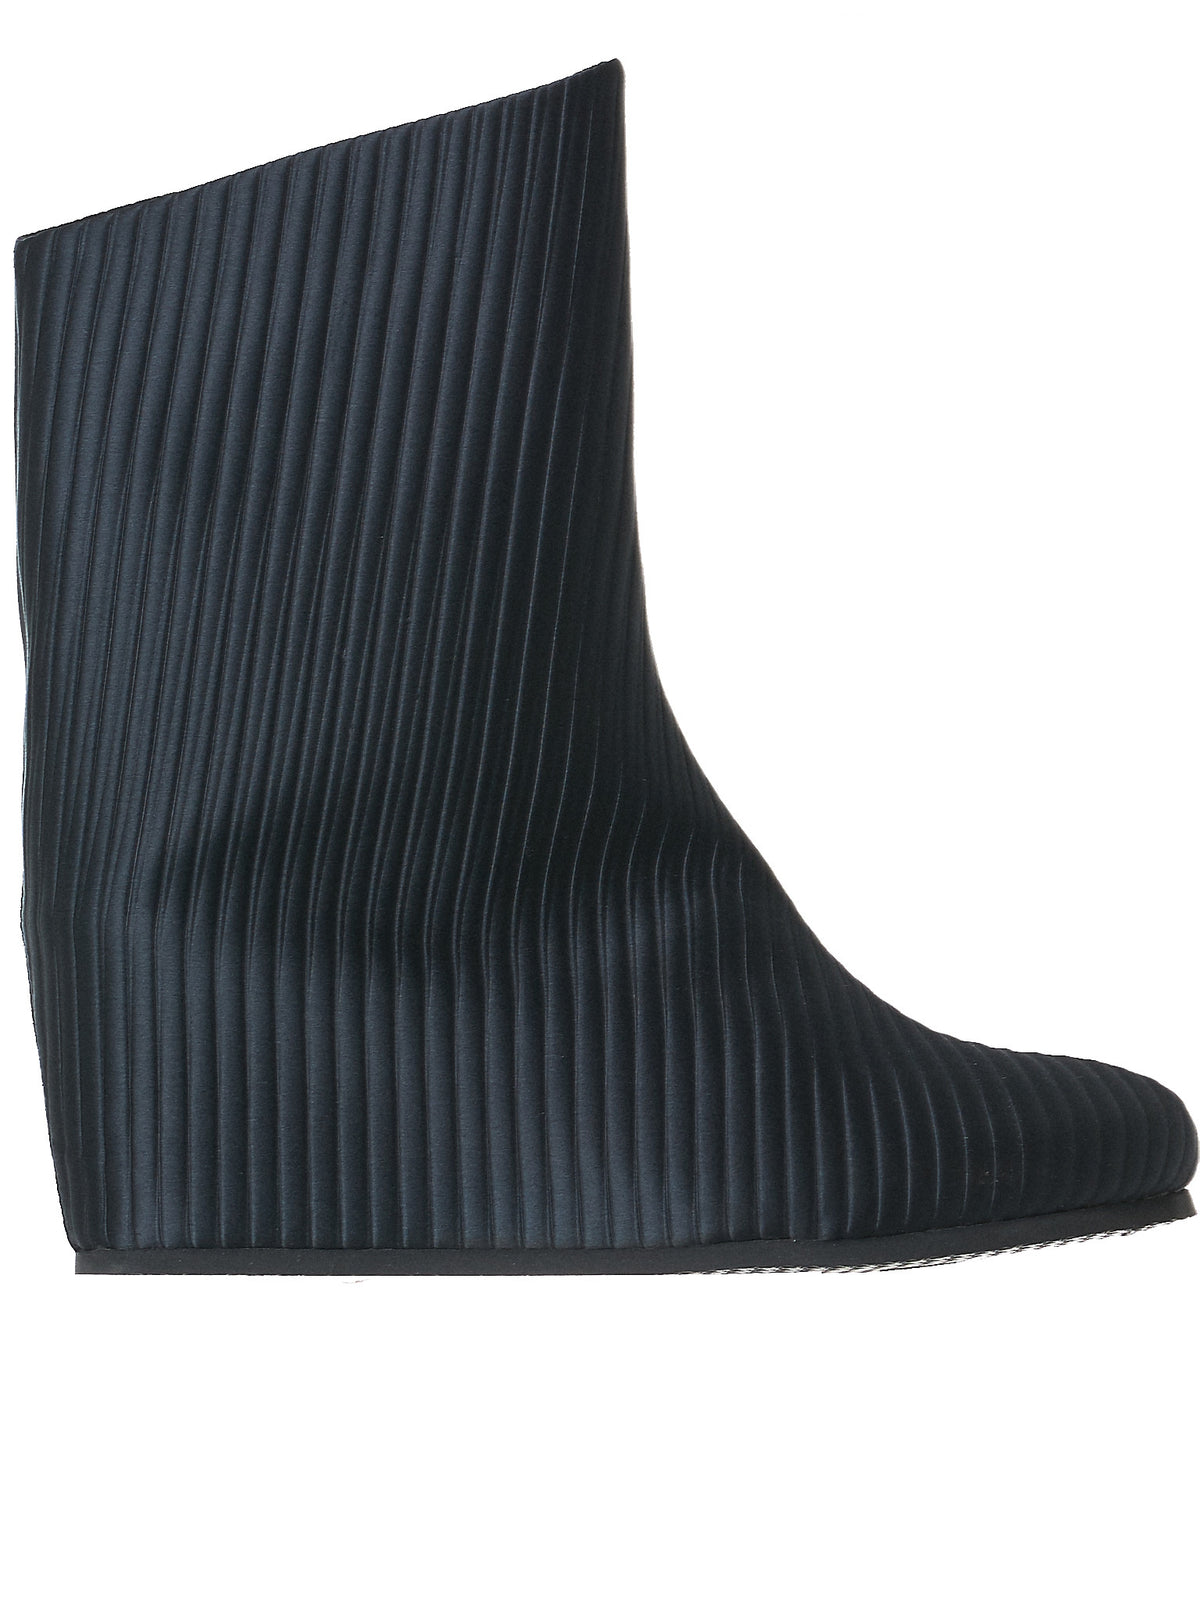 wedged boots - Black Peter Non NK368yh27